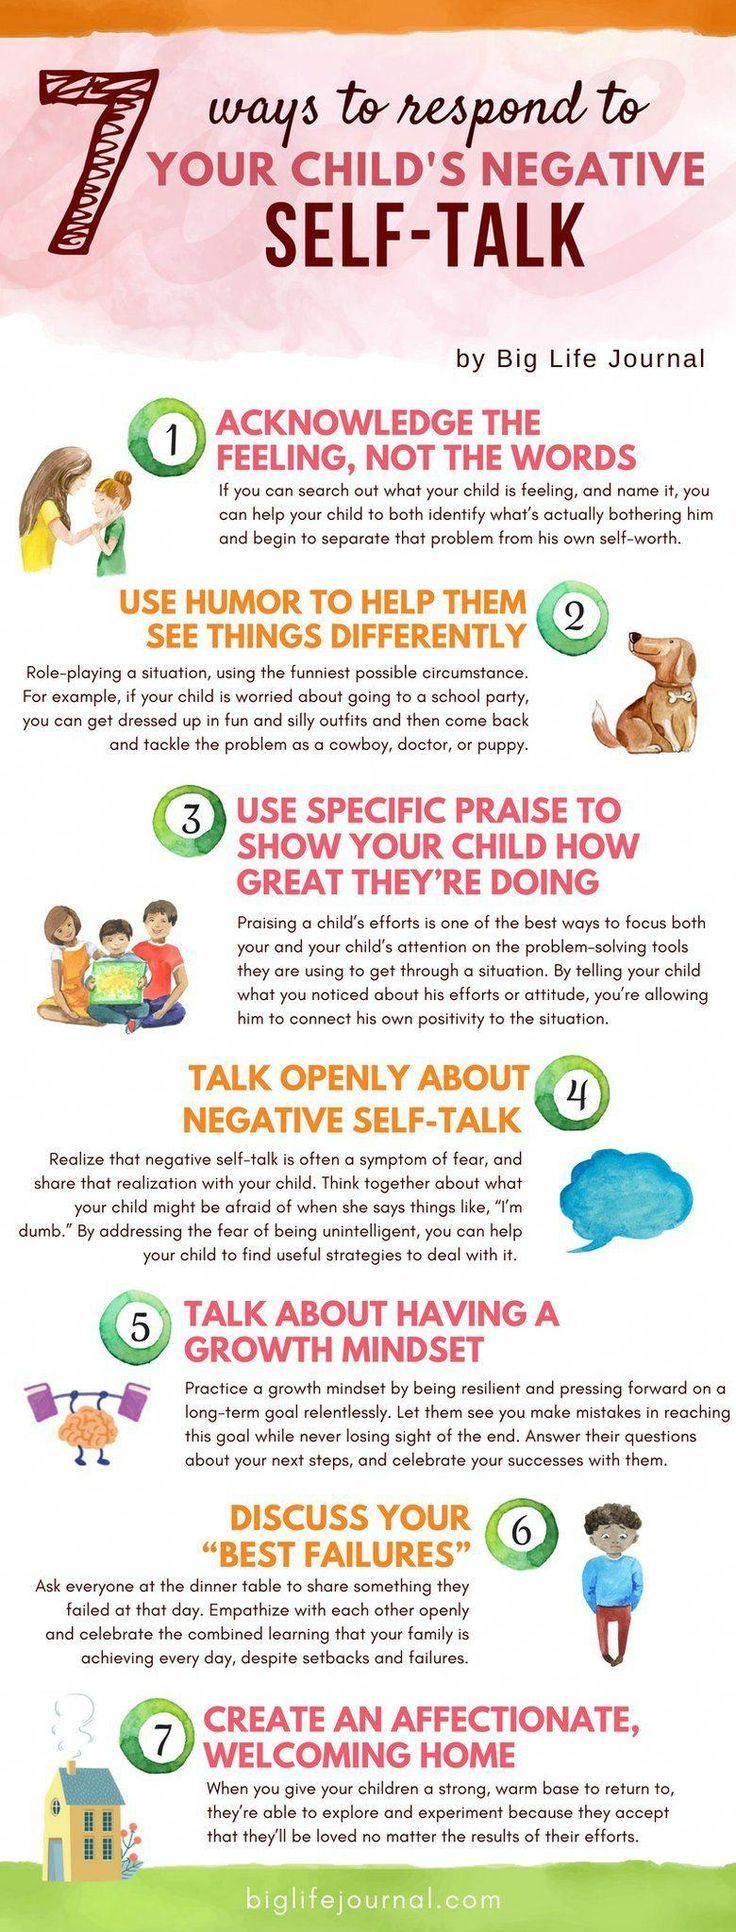 Park Art|My WordPress Blog_How To Become A Medical Foster Parent In Florida